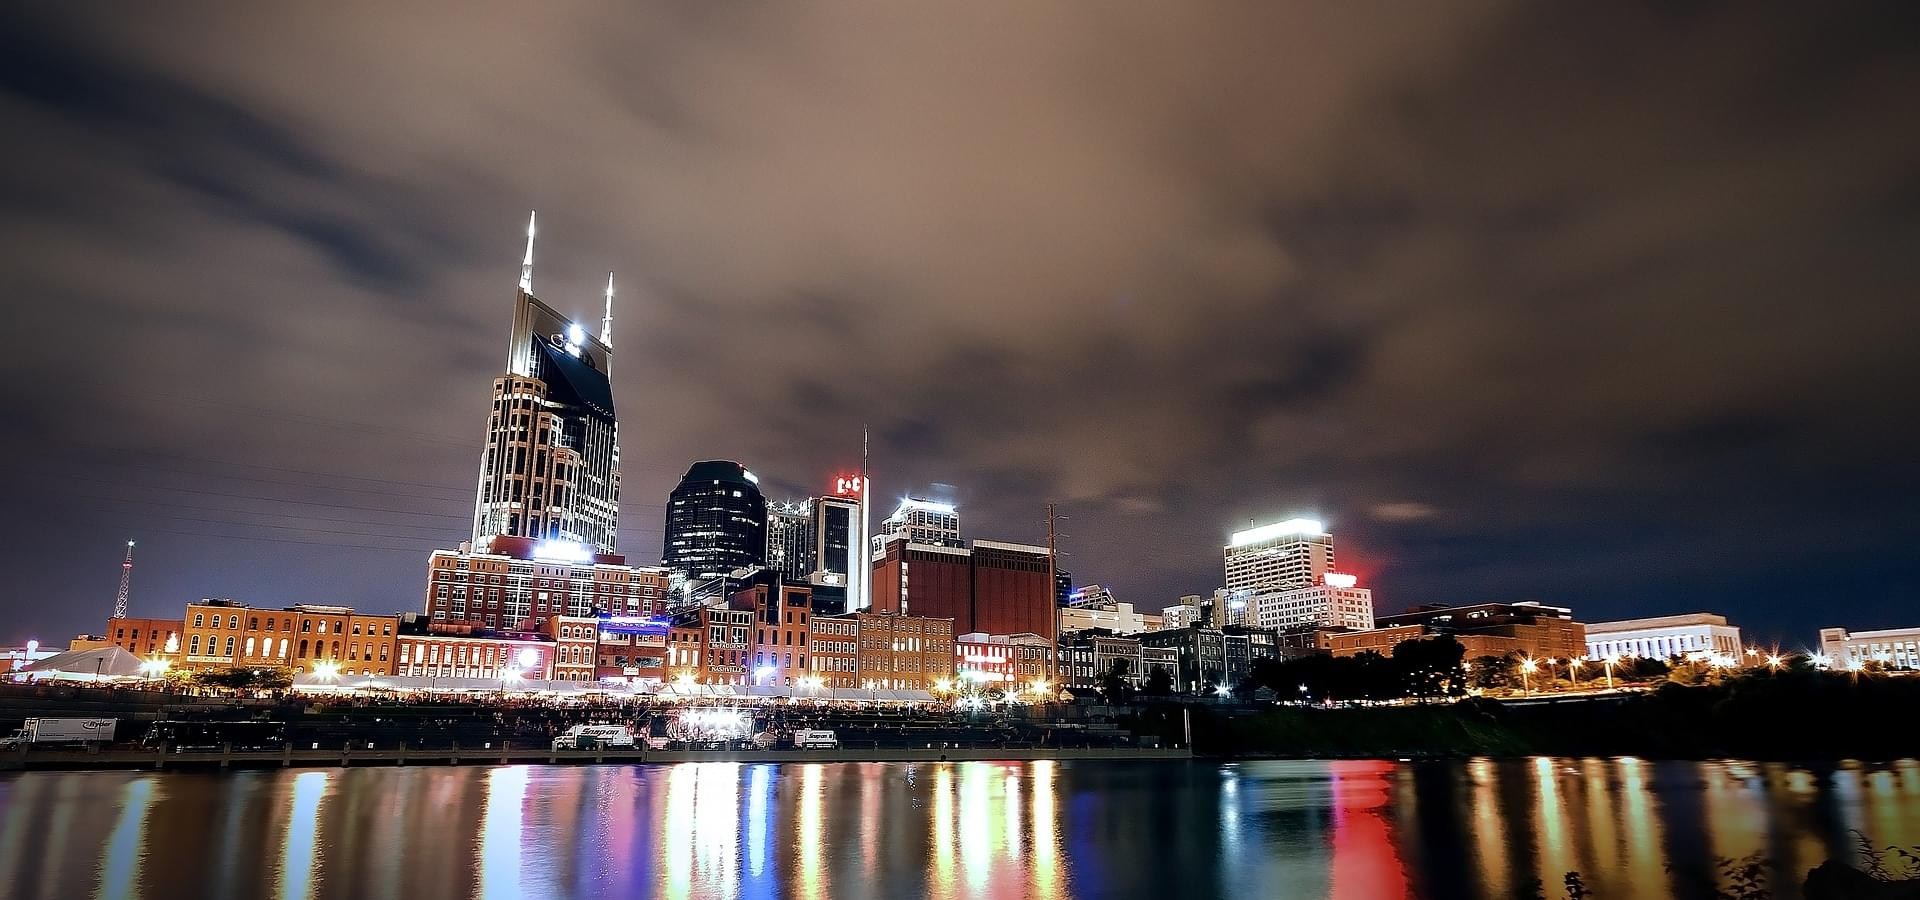 Nashville is in top 10 list for places to move in 2019